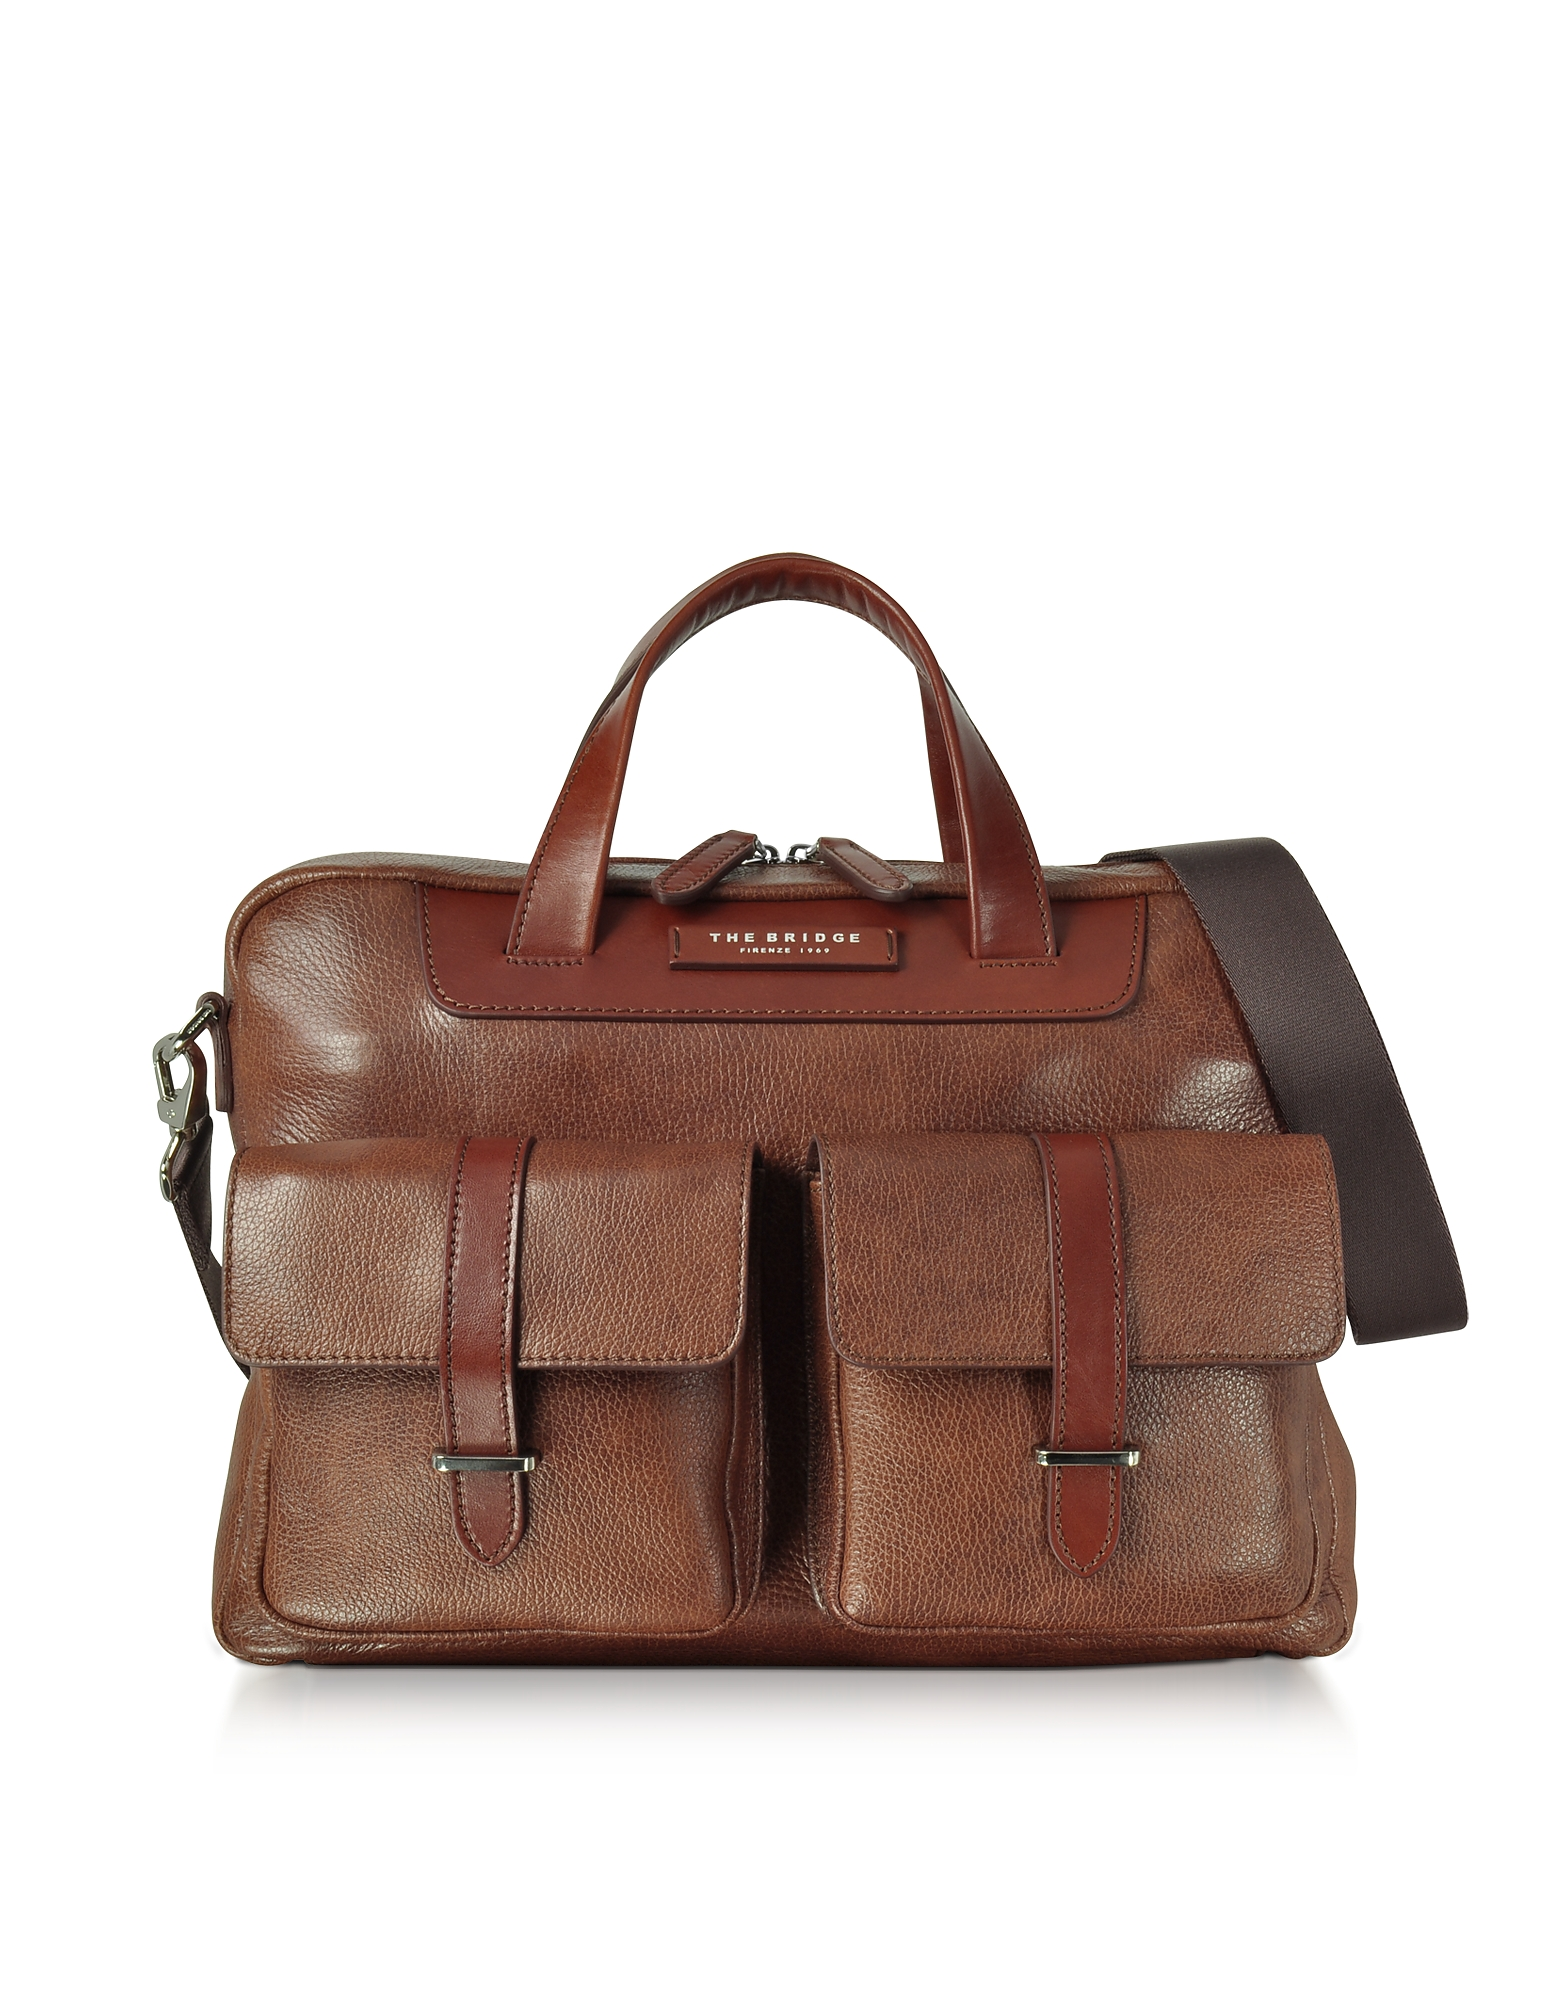 Image of The Bridge Designer Briefcases, Brown Leather Double Handle Briefcase w/Two Front Pockets